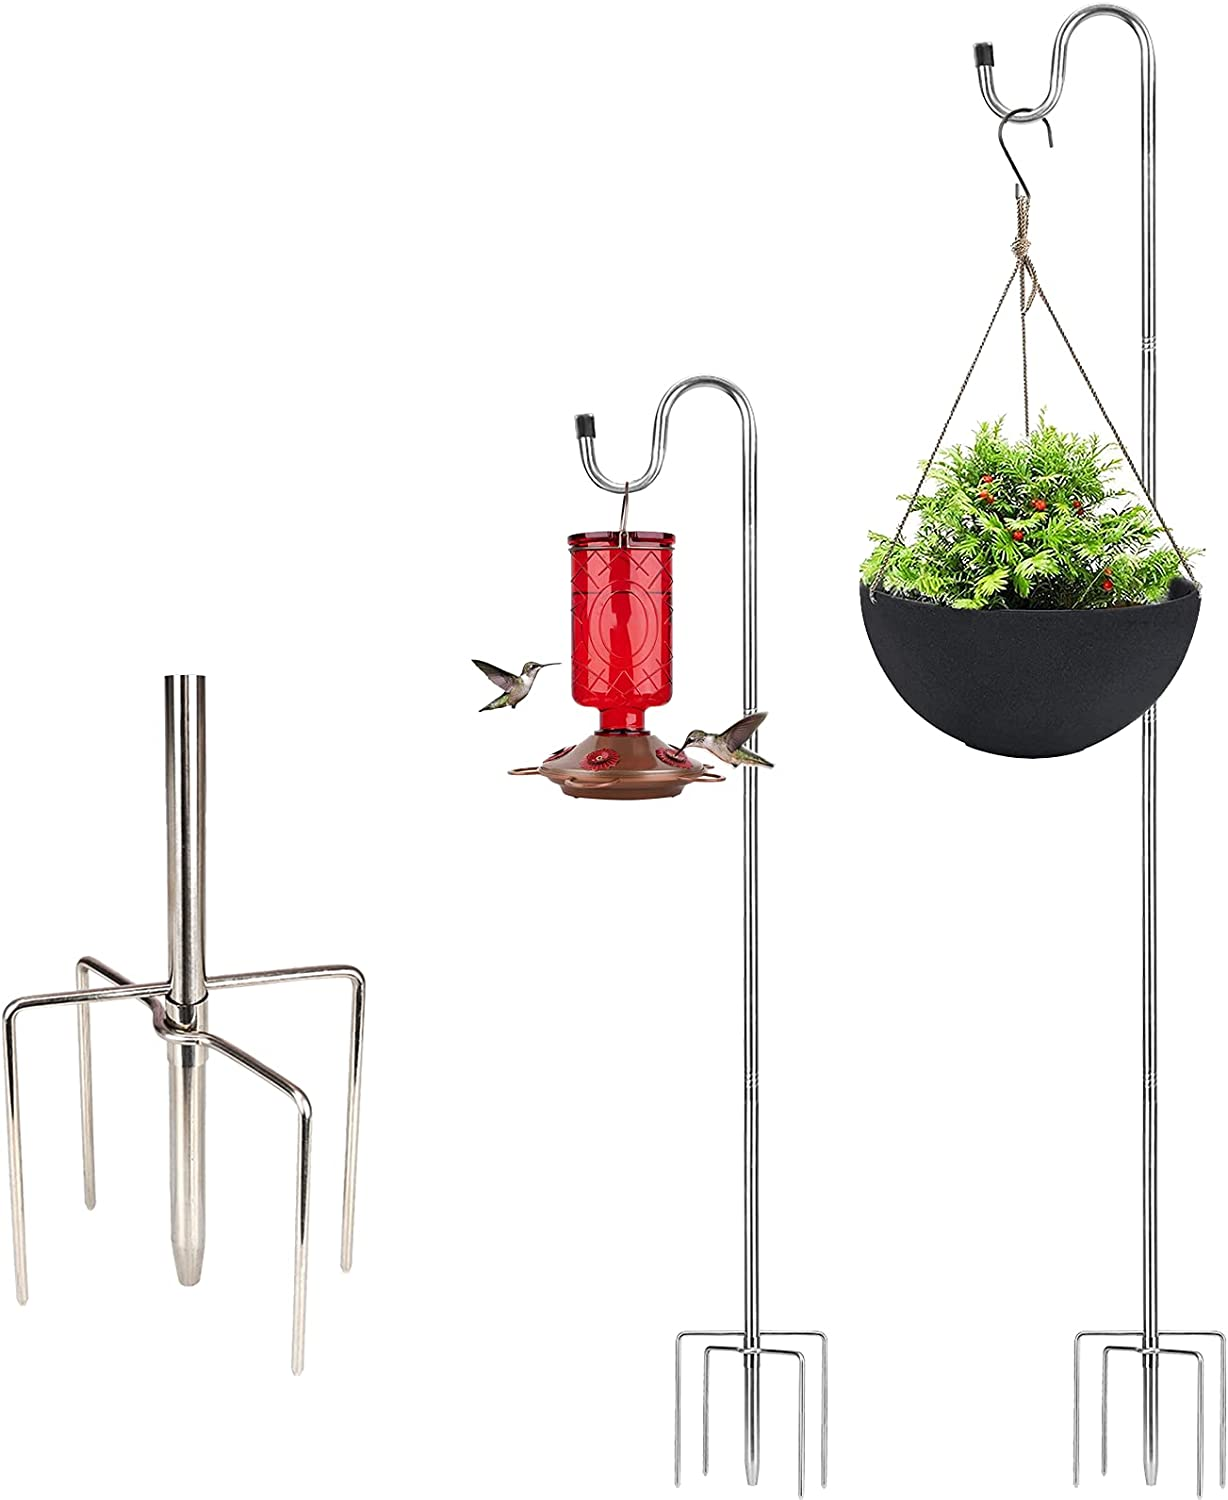 30 Inch Small Shepherds Hook, Bird Feeder Pole Stand with Hanger for Hanging Hummingbird Feeders, Plants, Outdoor String Lights, Sturdy with 5 Prong Base,Great for Garden Decoration